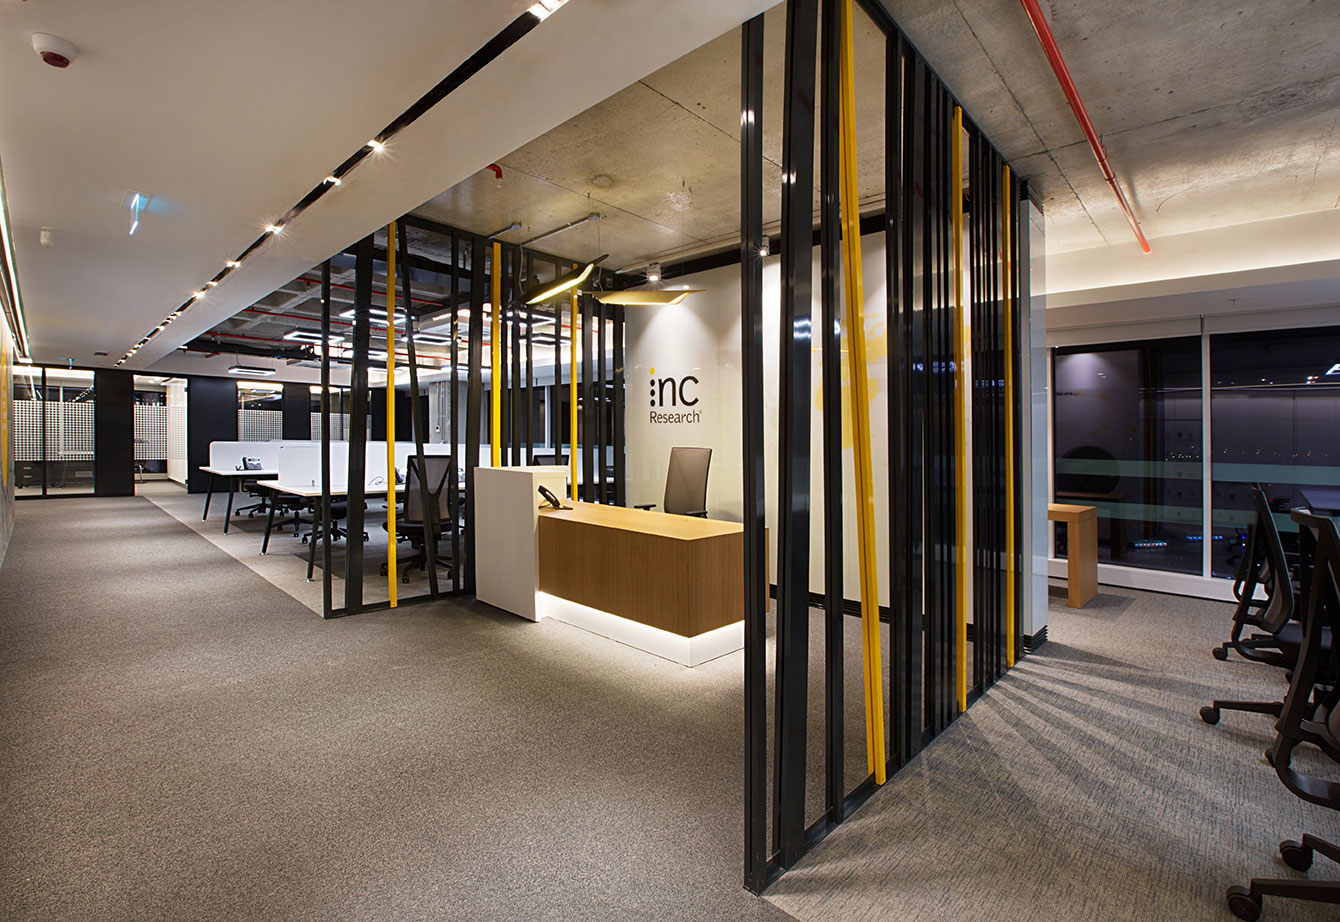 Inc reaserch moved to their new office avci architects R house architecture research office